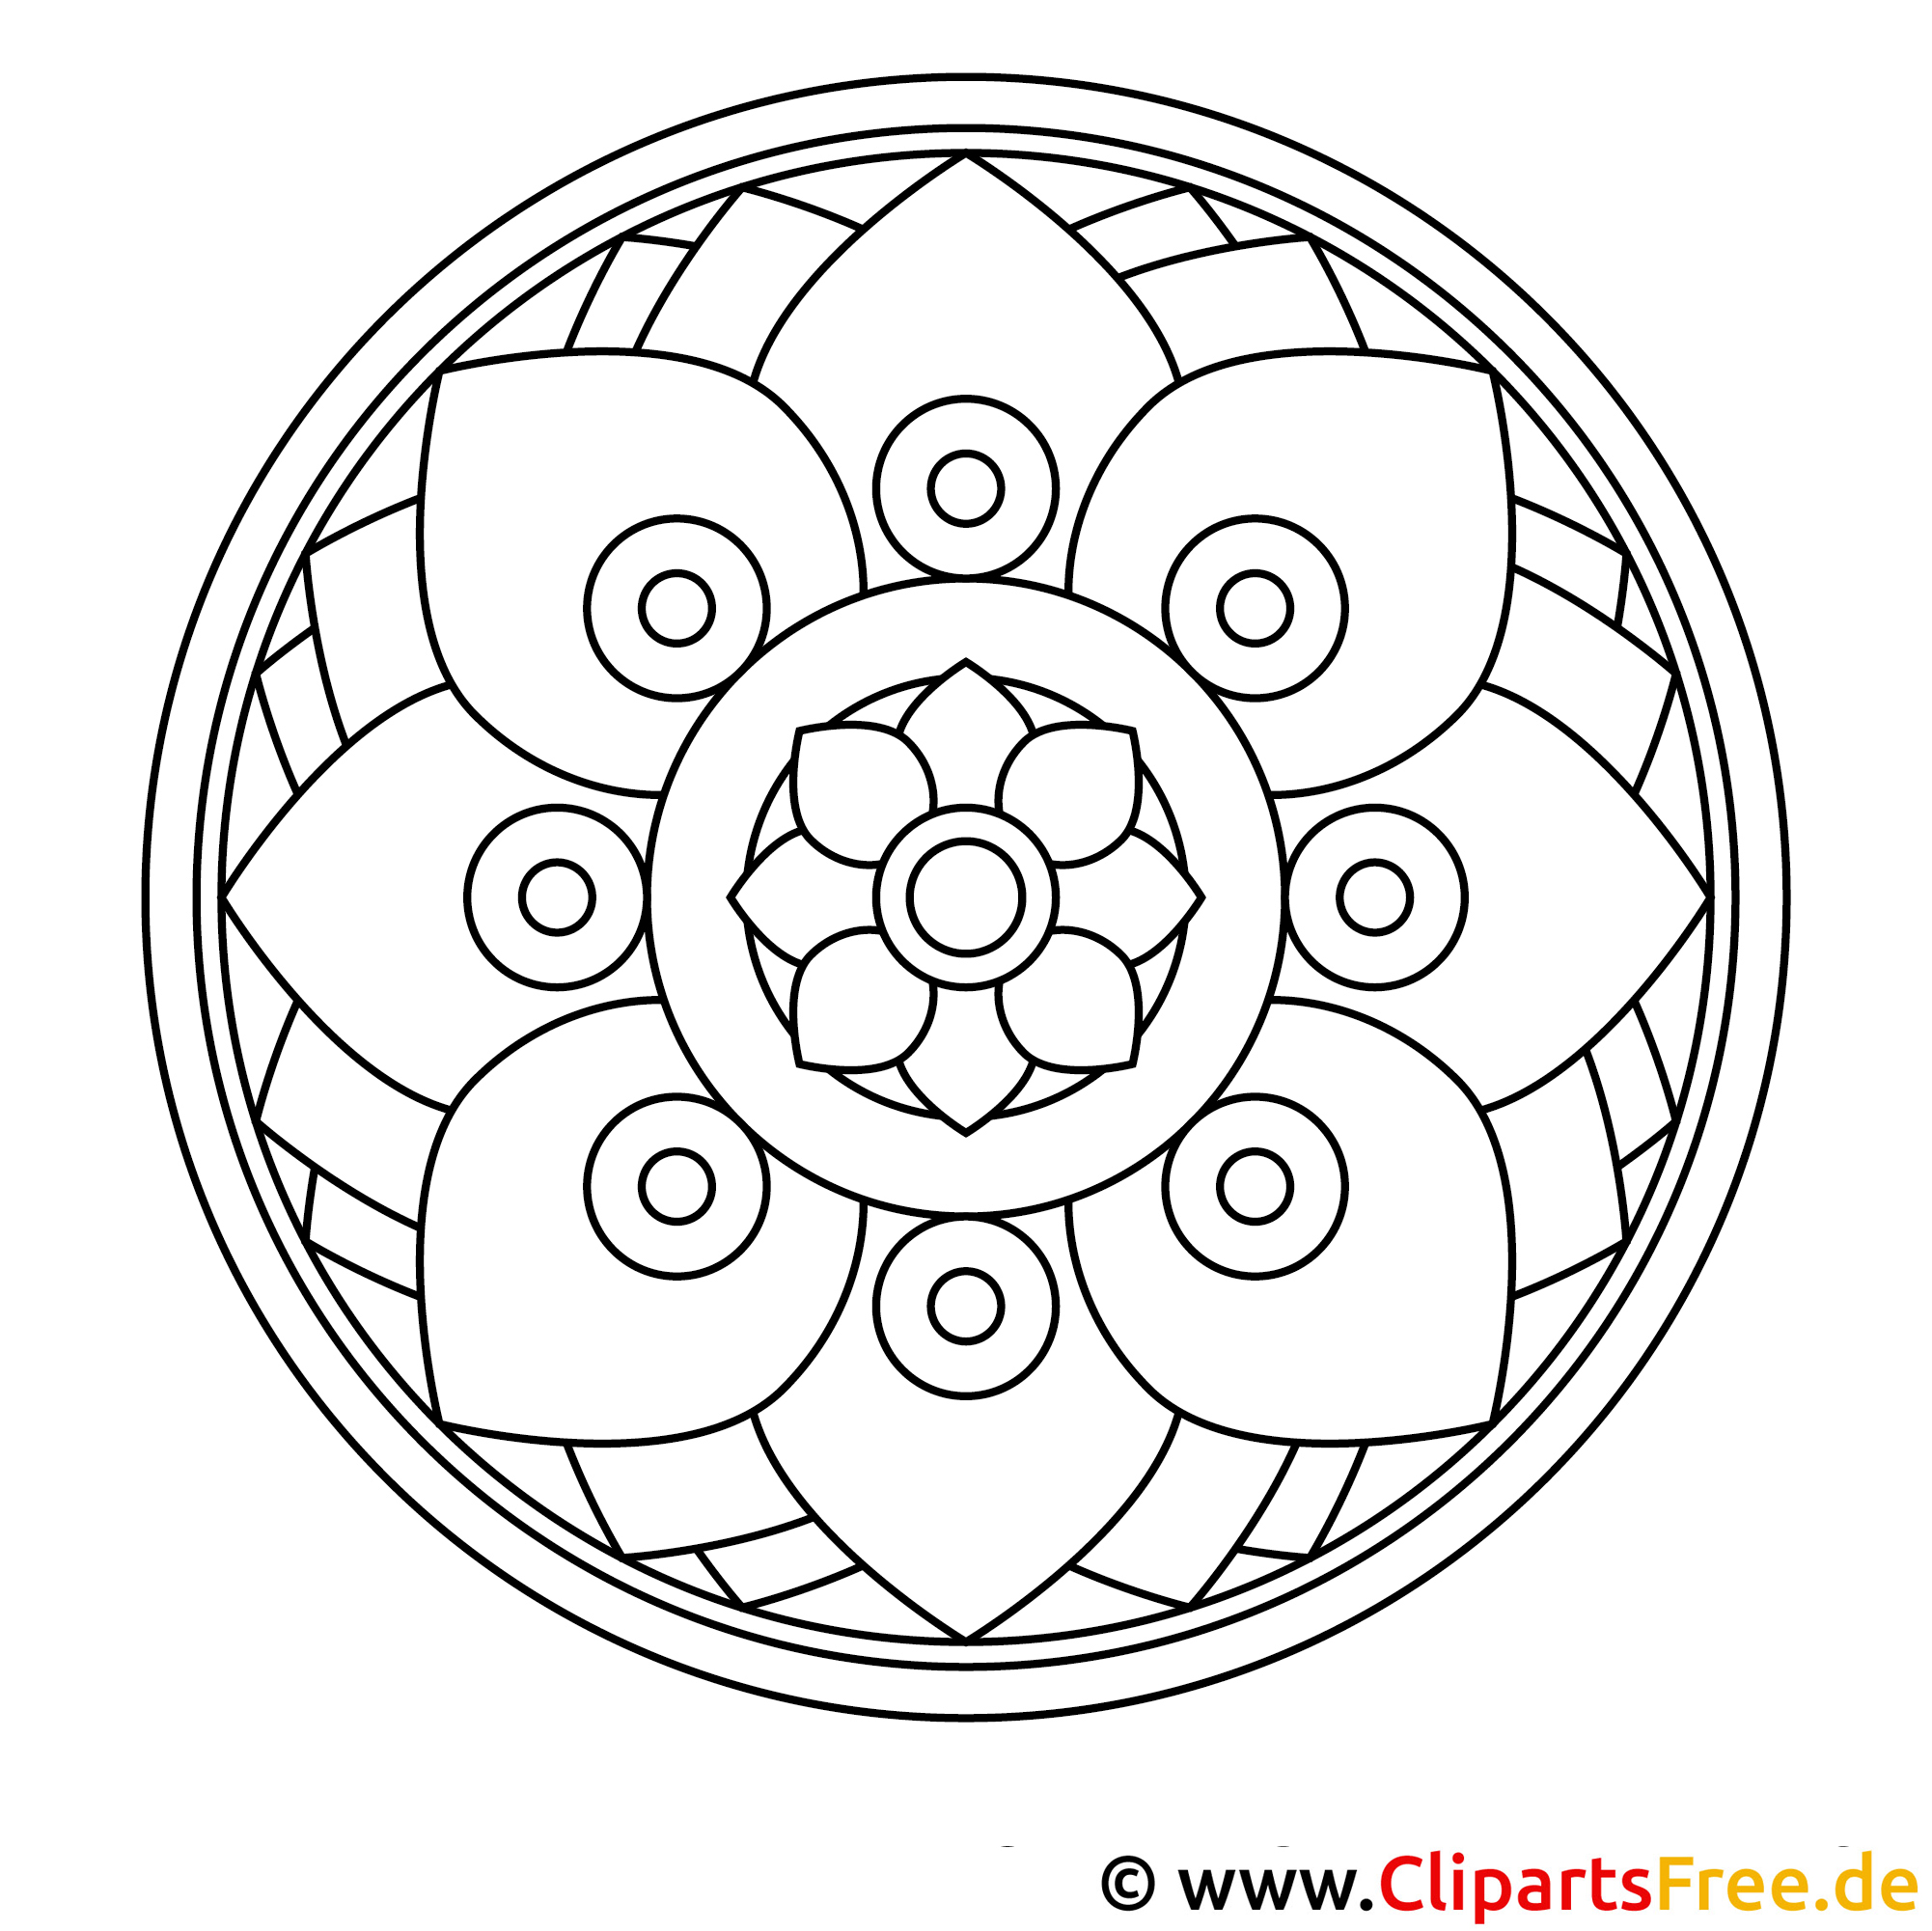 mandalas zum ausmalen on pinterest mandalas zum ausdrucken bilder zum ausmalen and. Black Bedroom Furniture Sets. Home Design Ideas